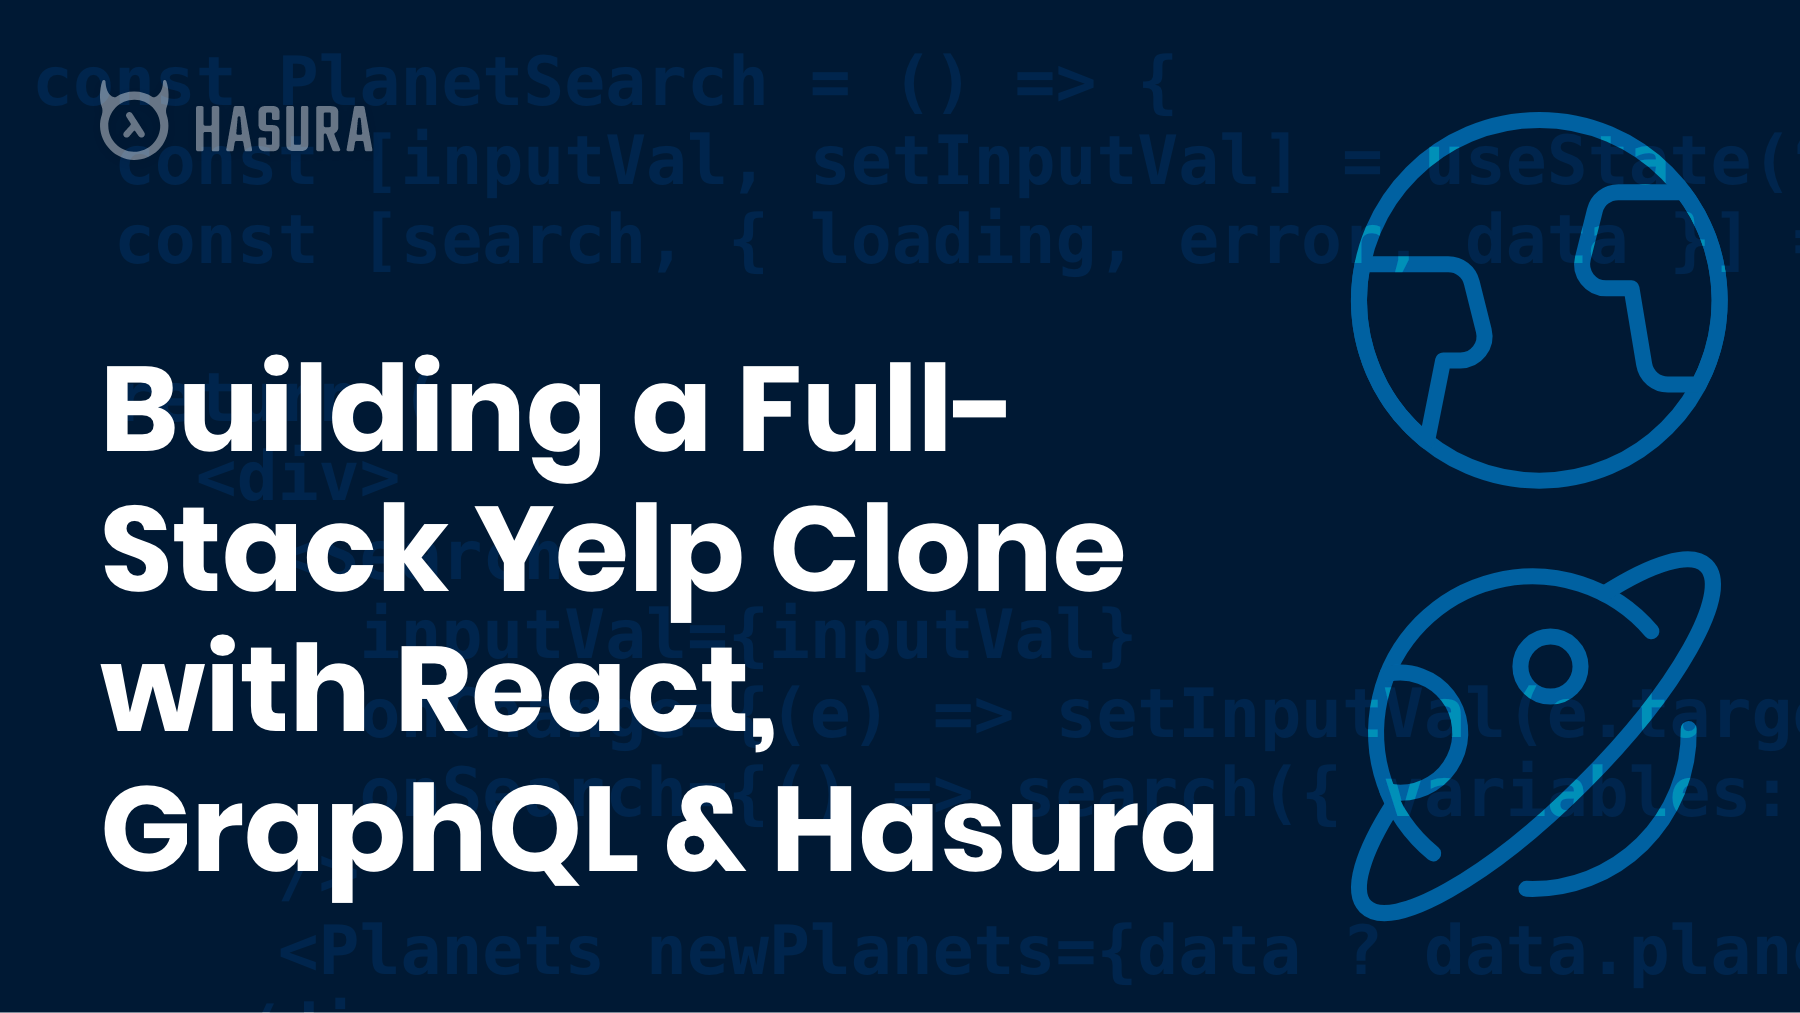 Building a Full-Stack Yelp Clone with React, GraphQL & Hasura